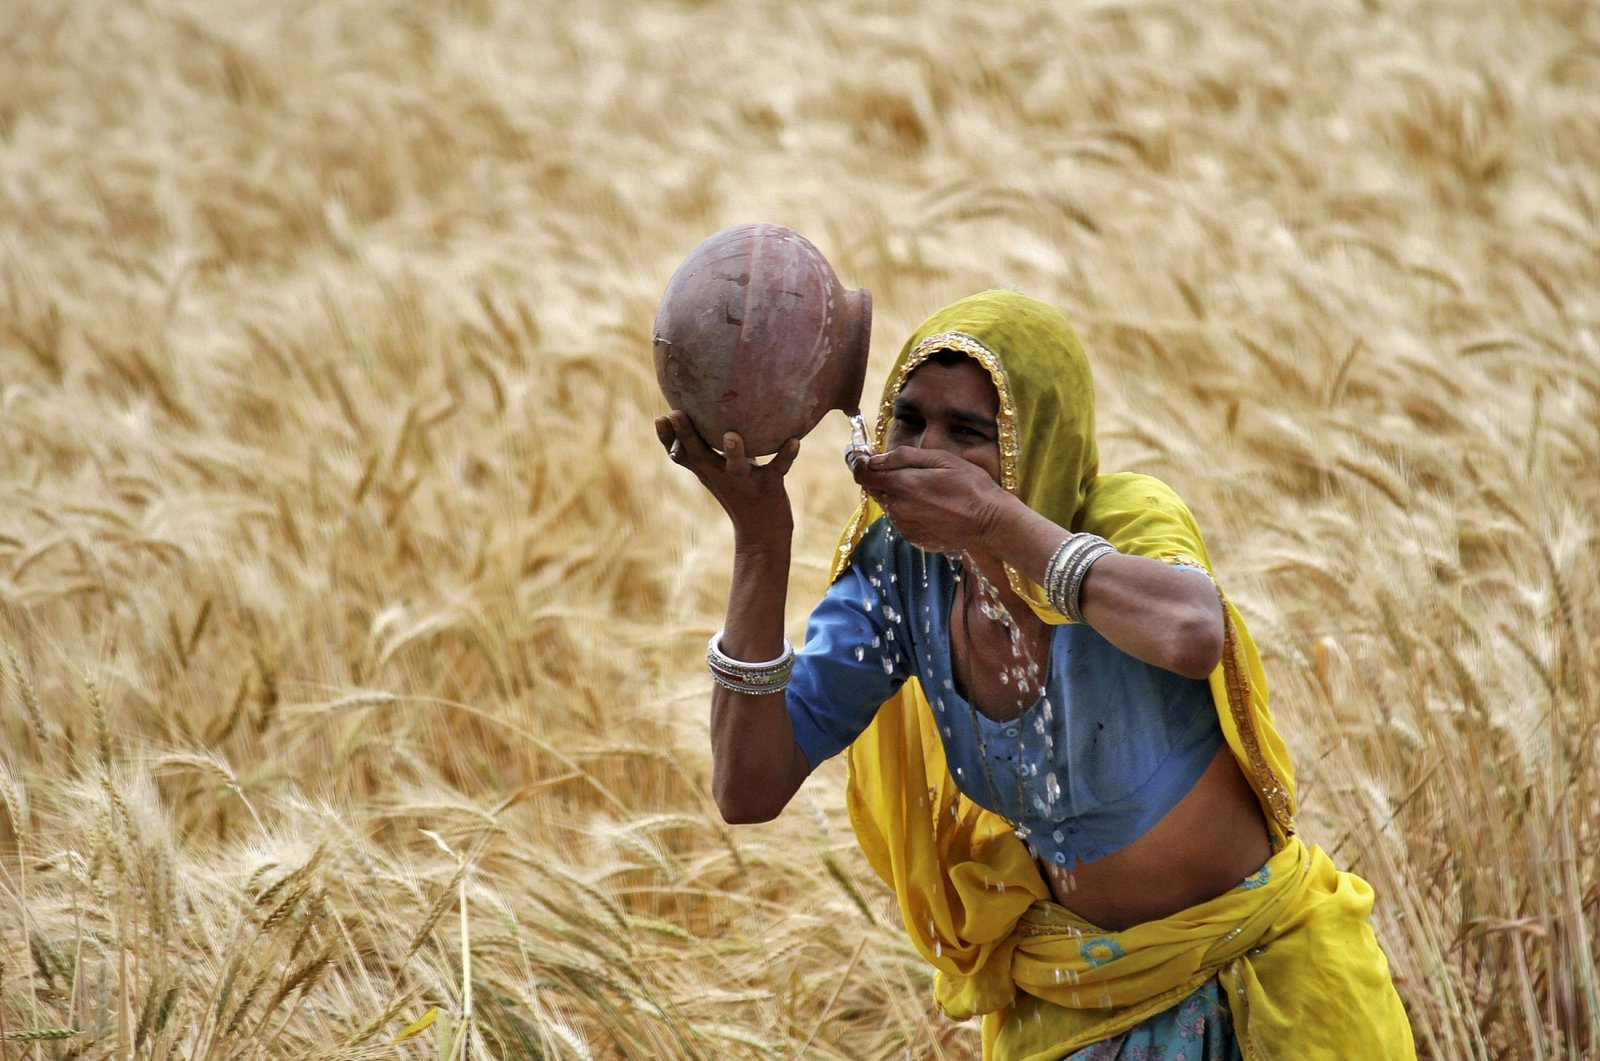 A female farmer drinks water from an earthen pot in a wheat field on the outskirts of Ajmer in the desert Indian state of Rajasthan, April 4, 2015. (REUTERS Photo)